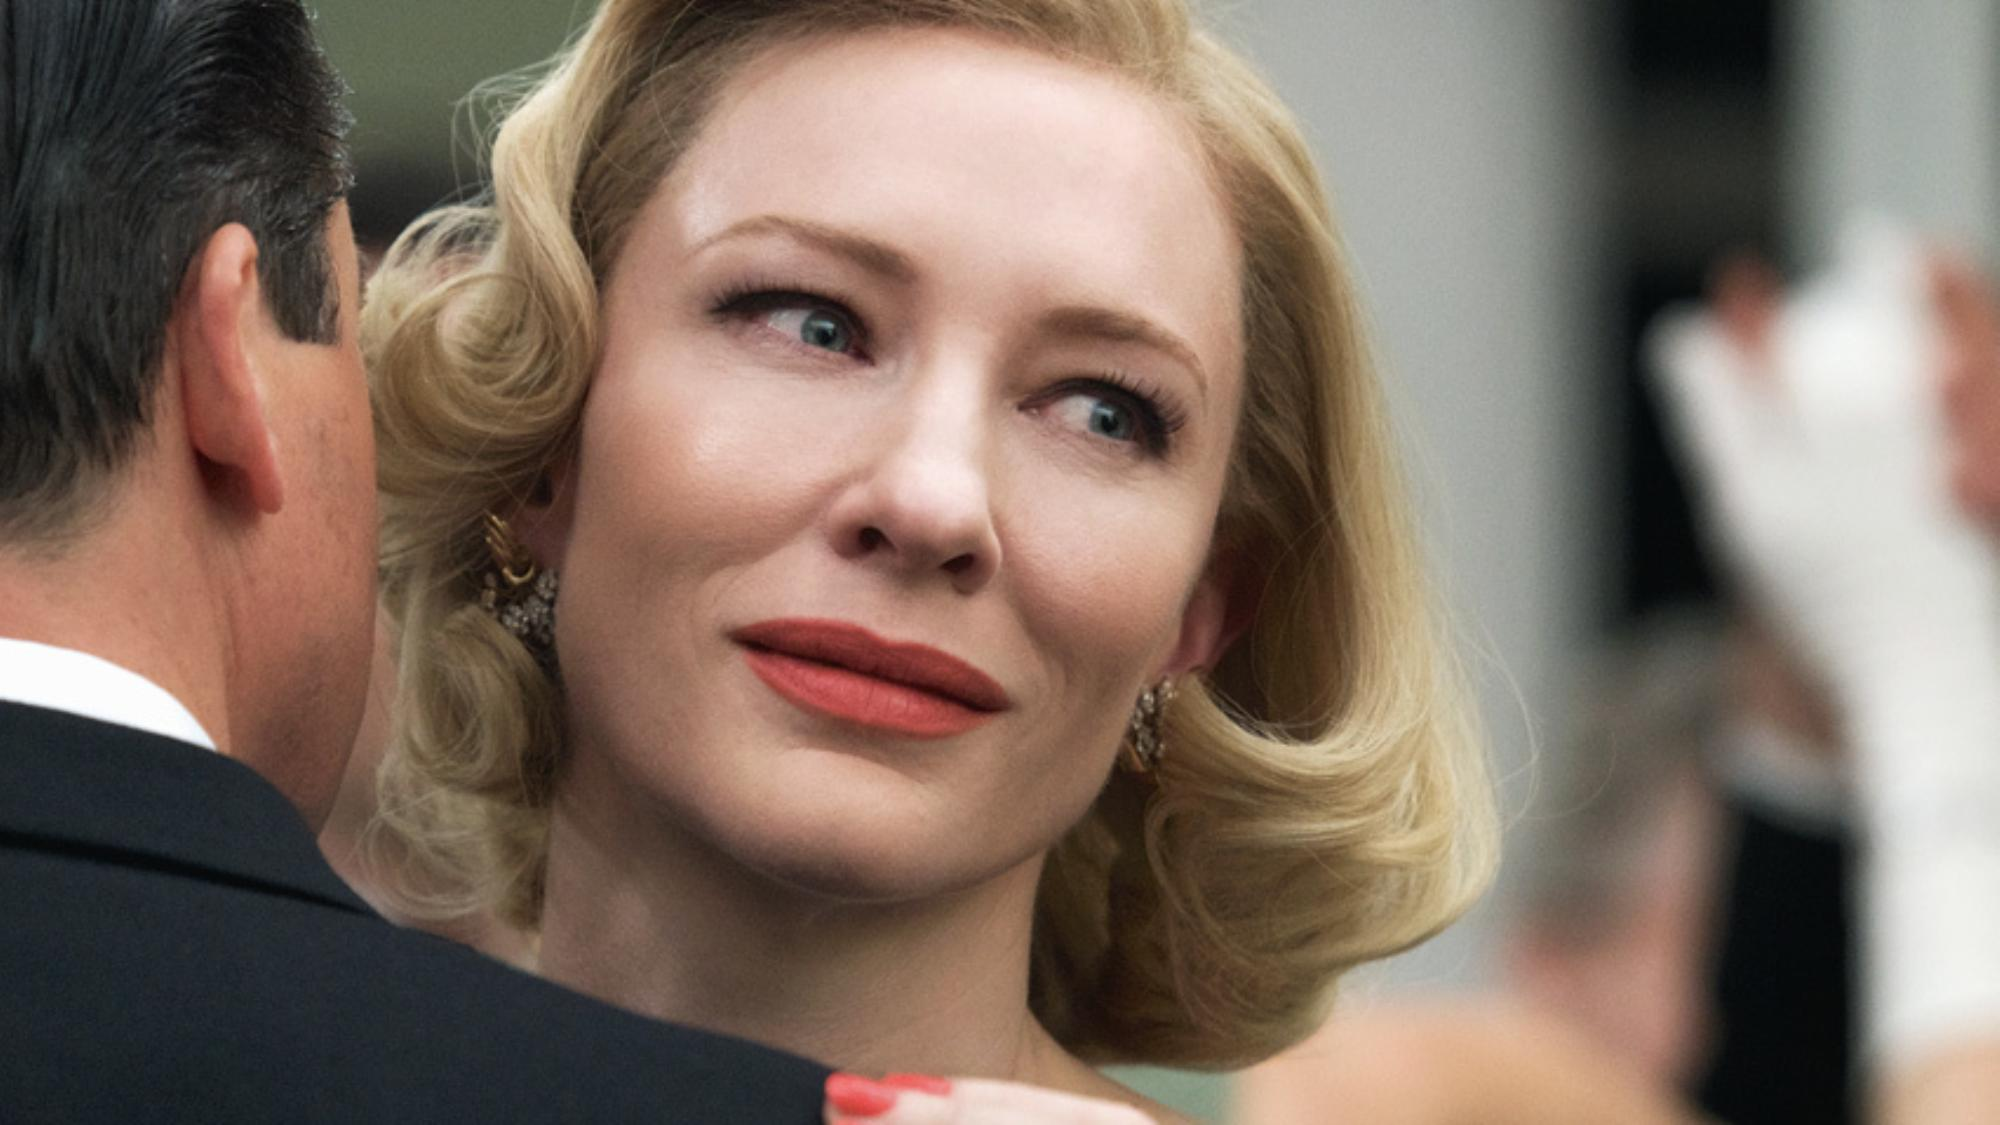 Cate Blanchett has a great beauty routine, and we're stealing it